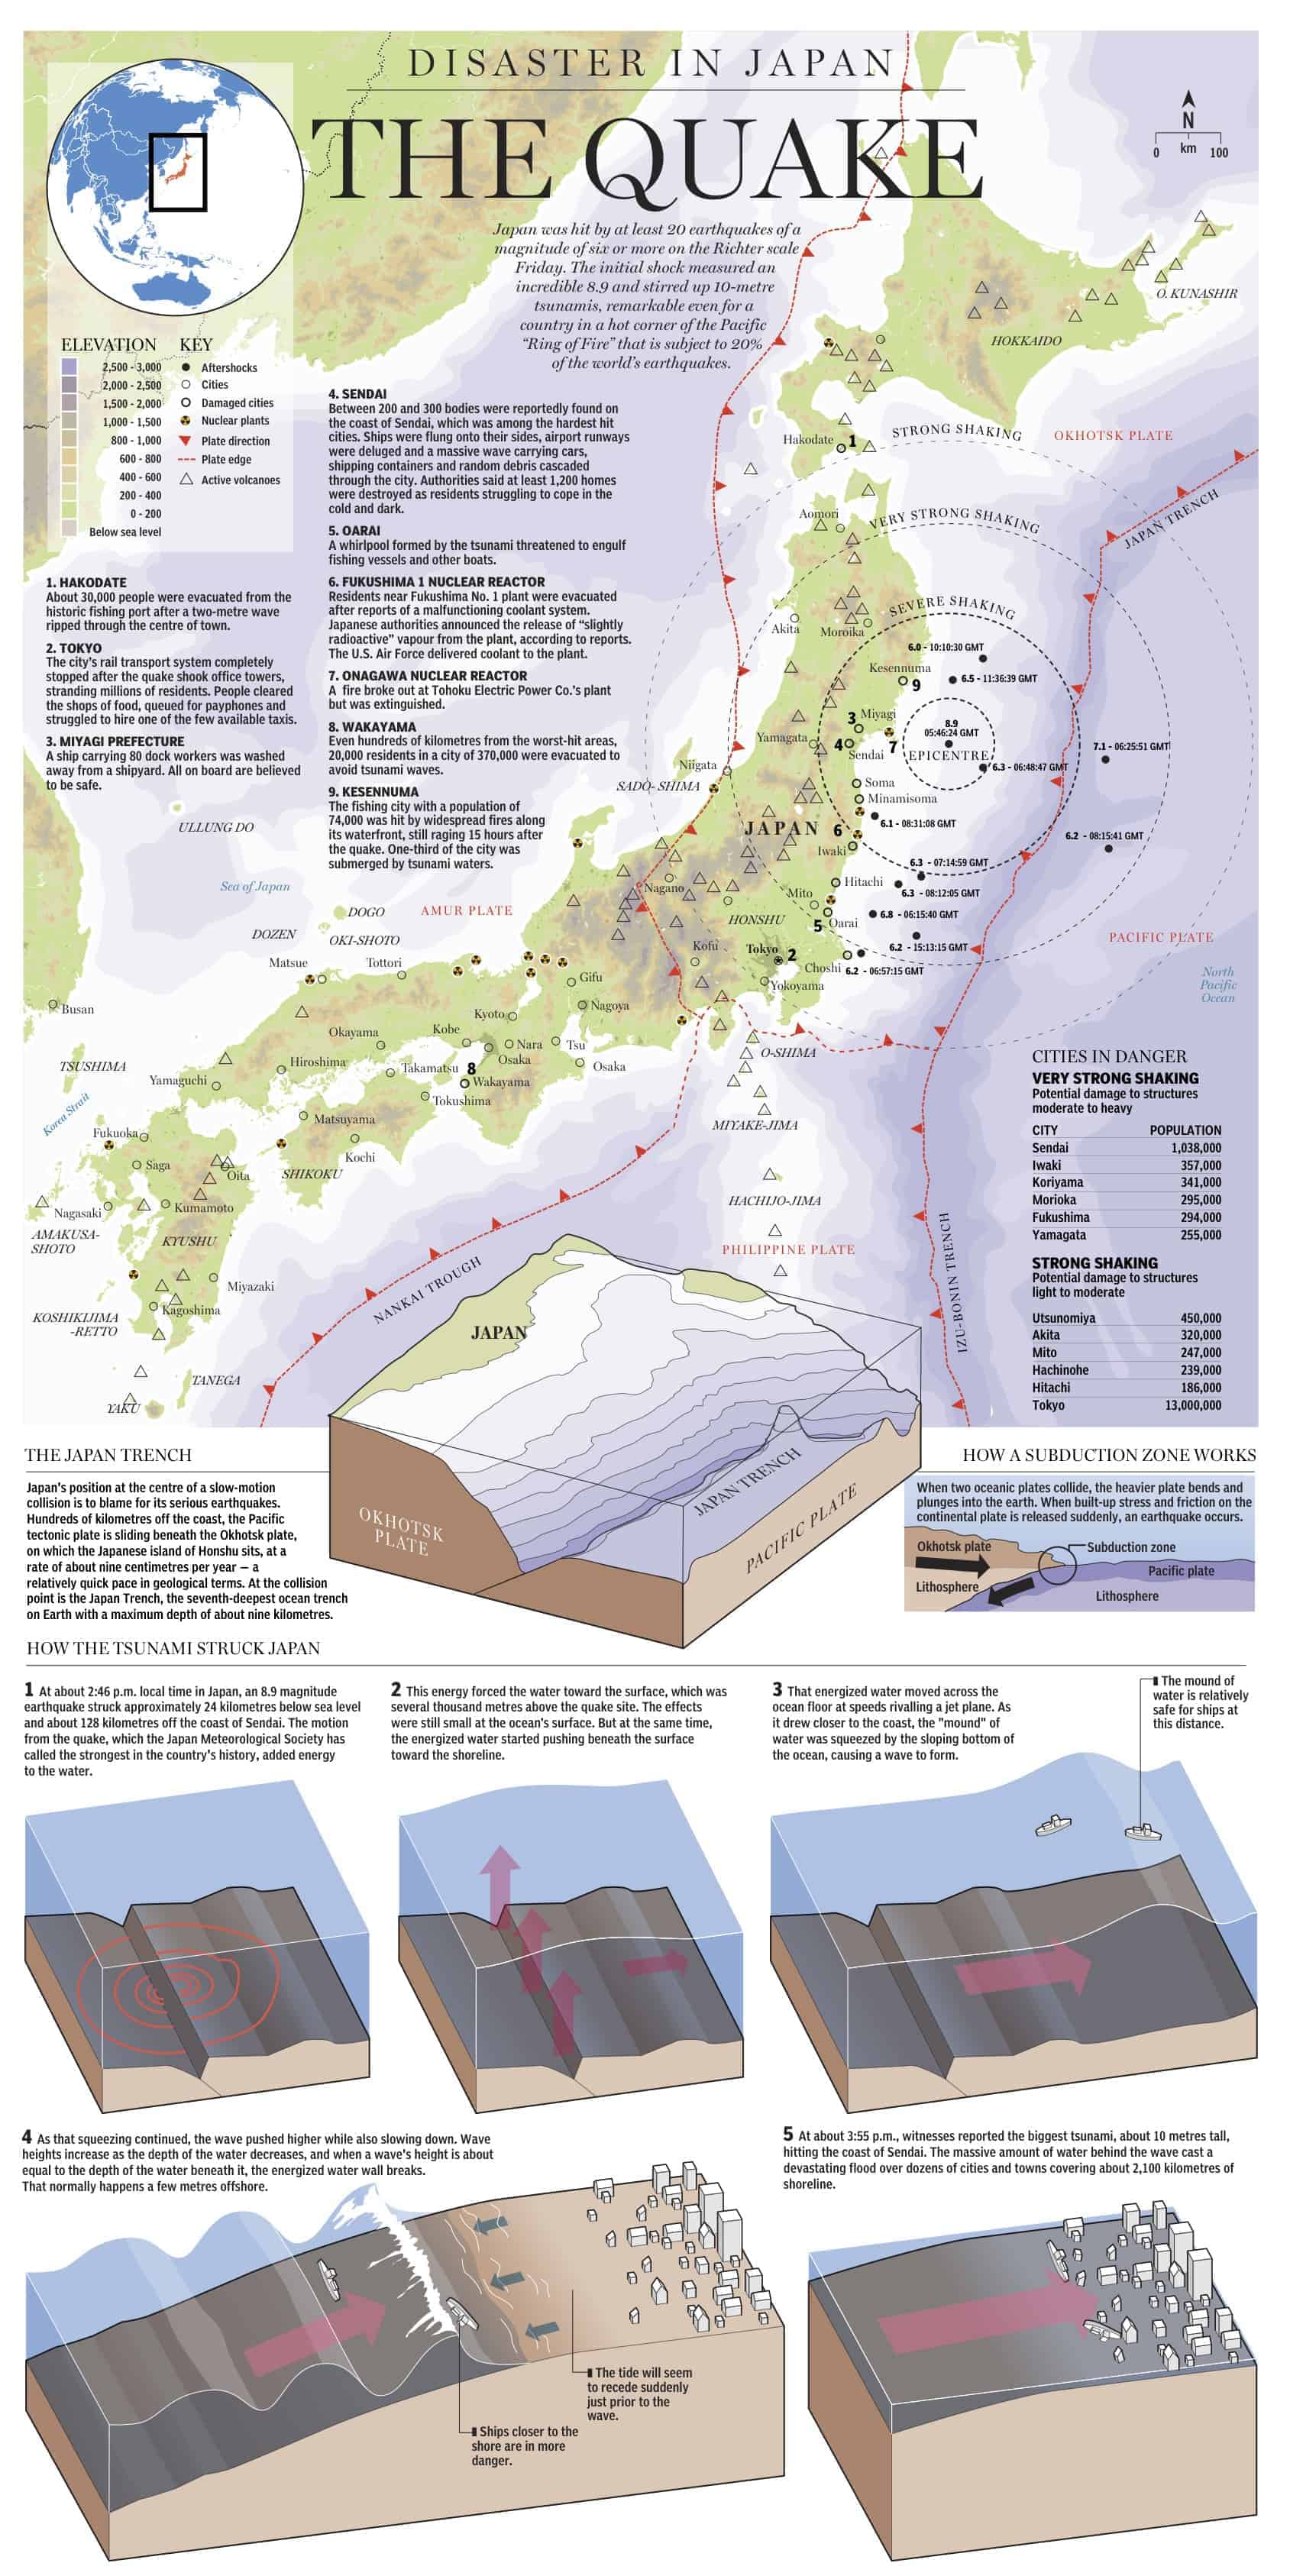 The Quake in Japan | Daily Infographic